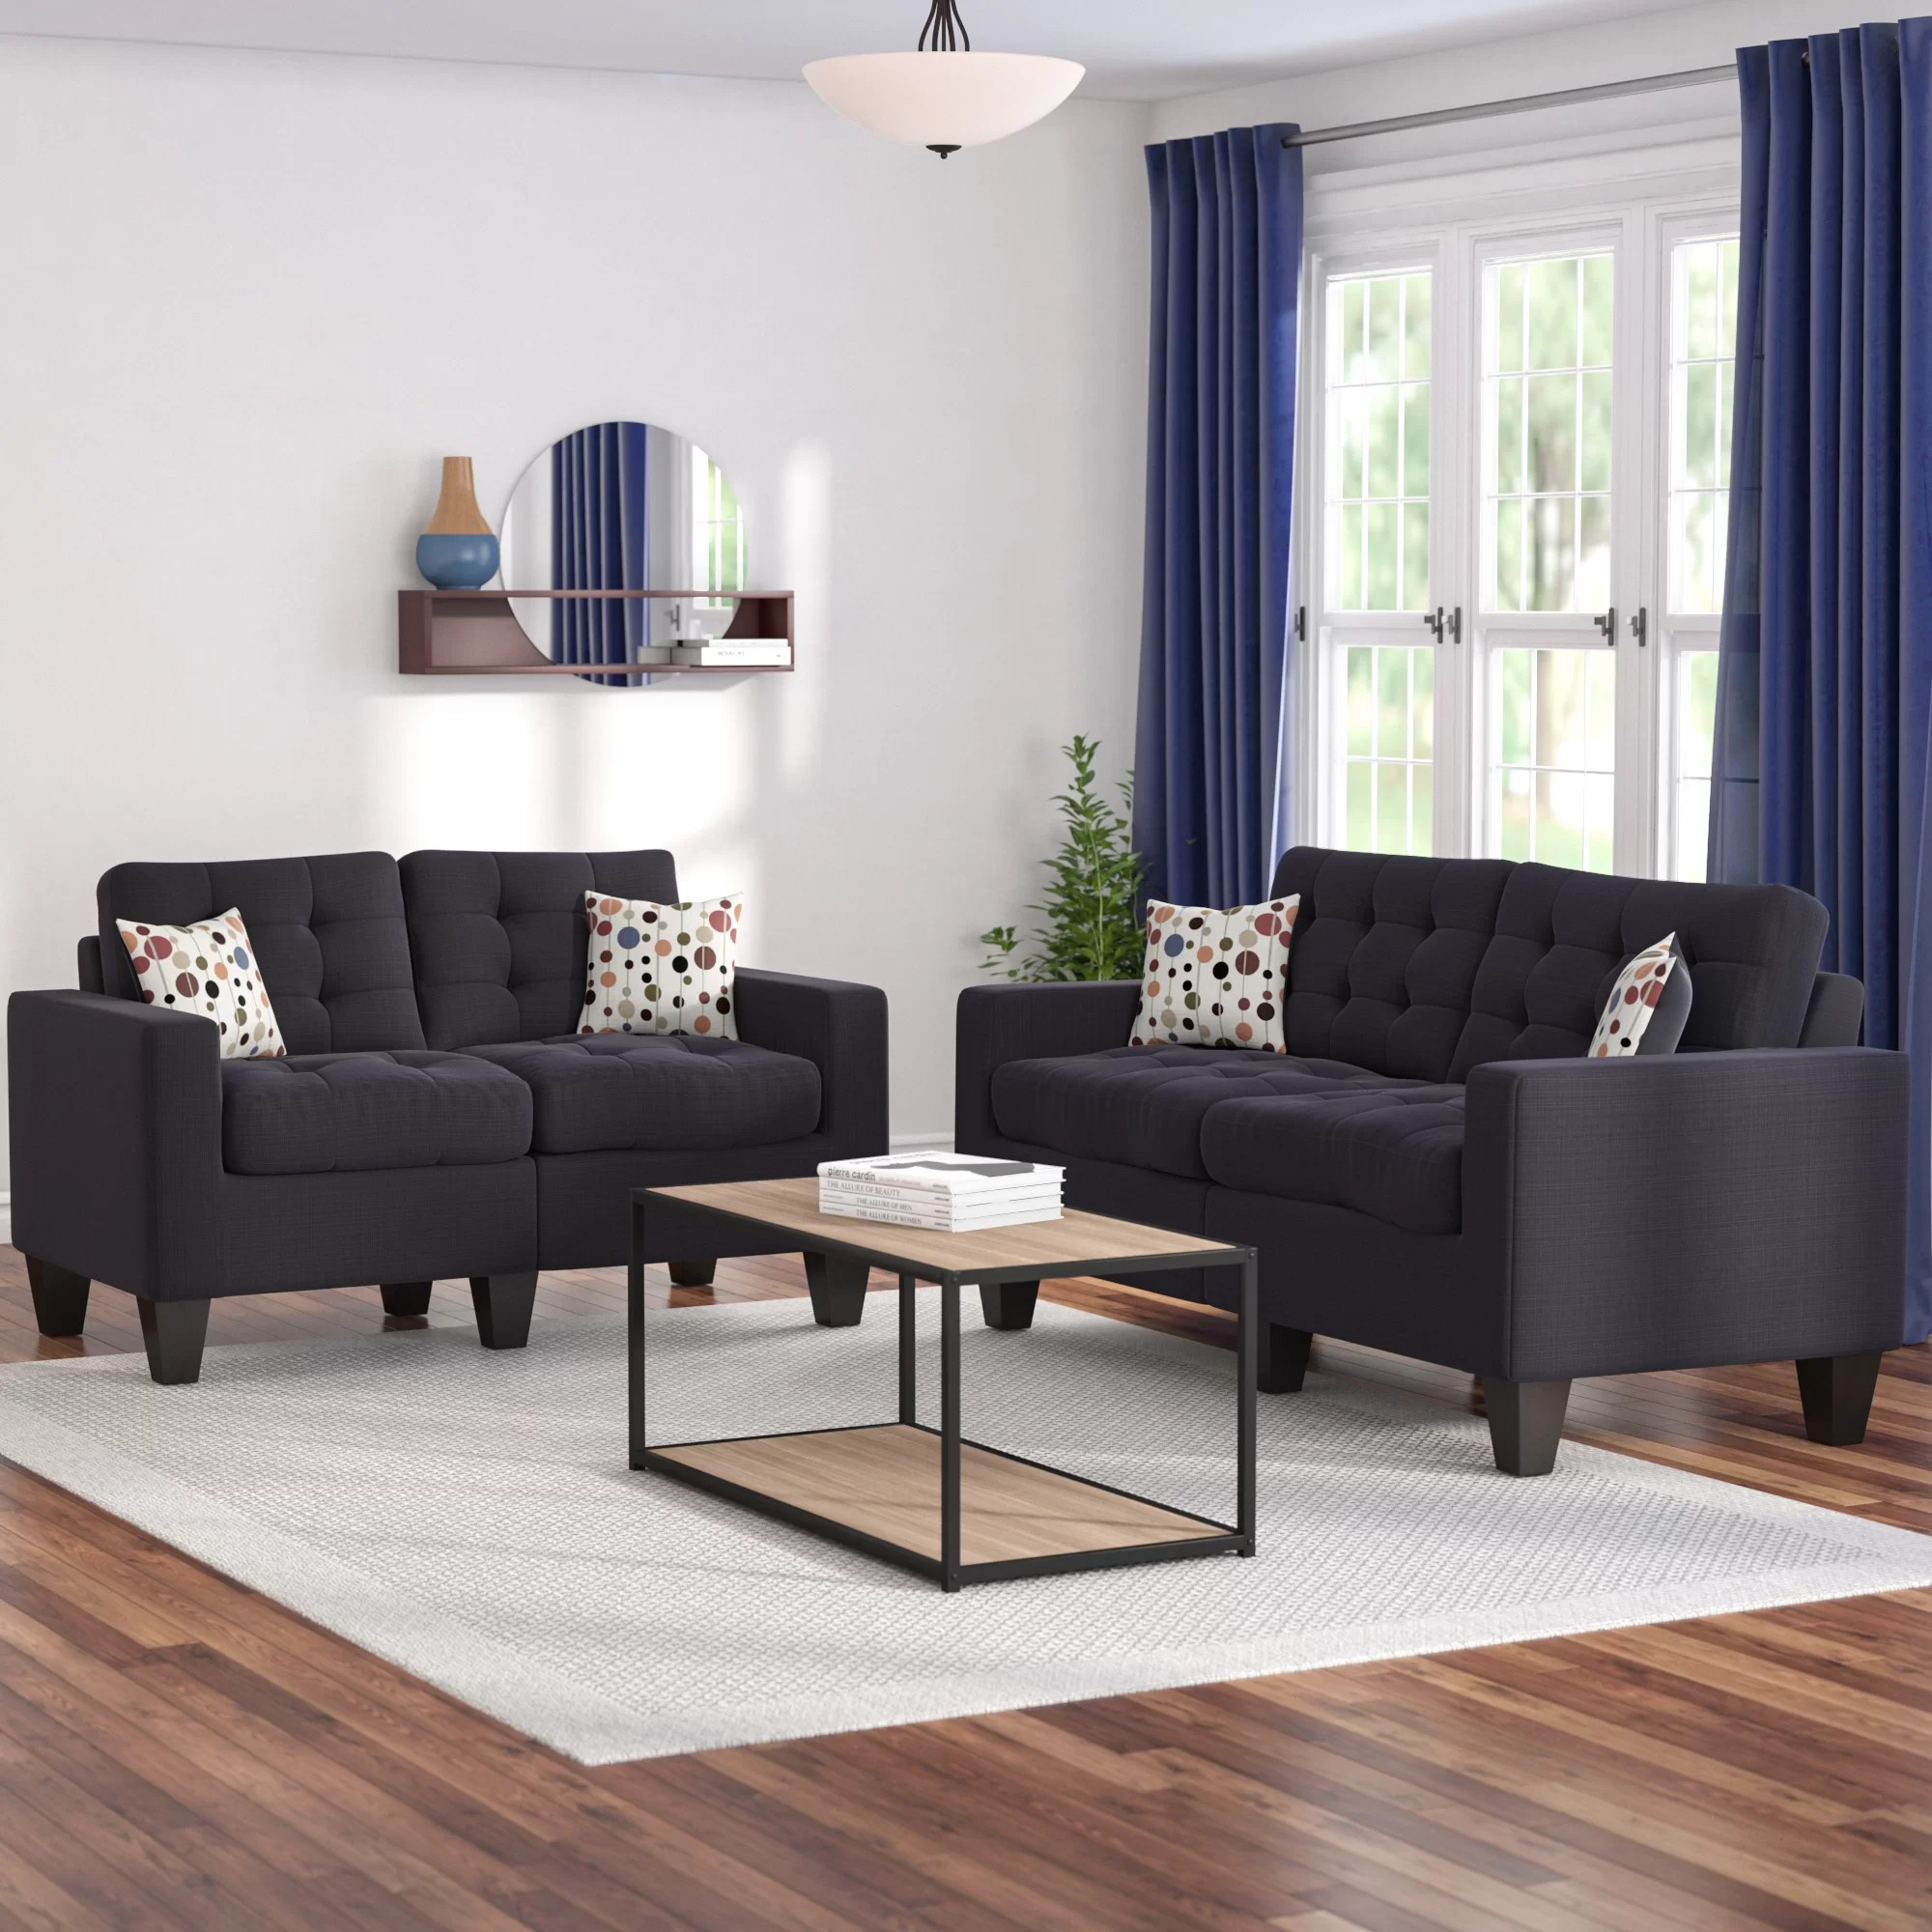 living room couch and 2 chairs good paint colors for small rooms zipcode design amia piece set reviews wayfair